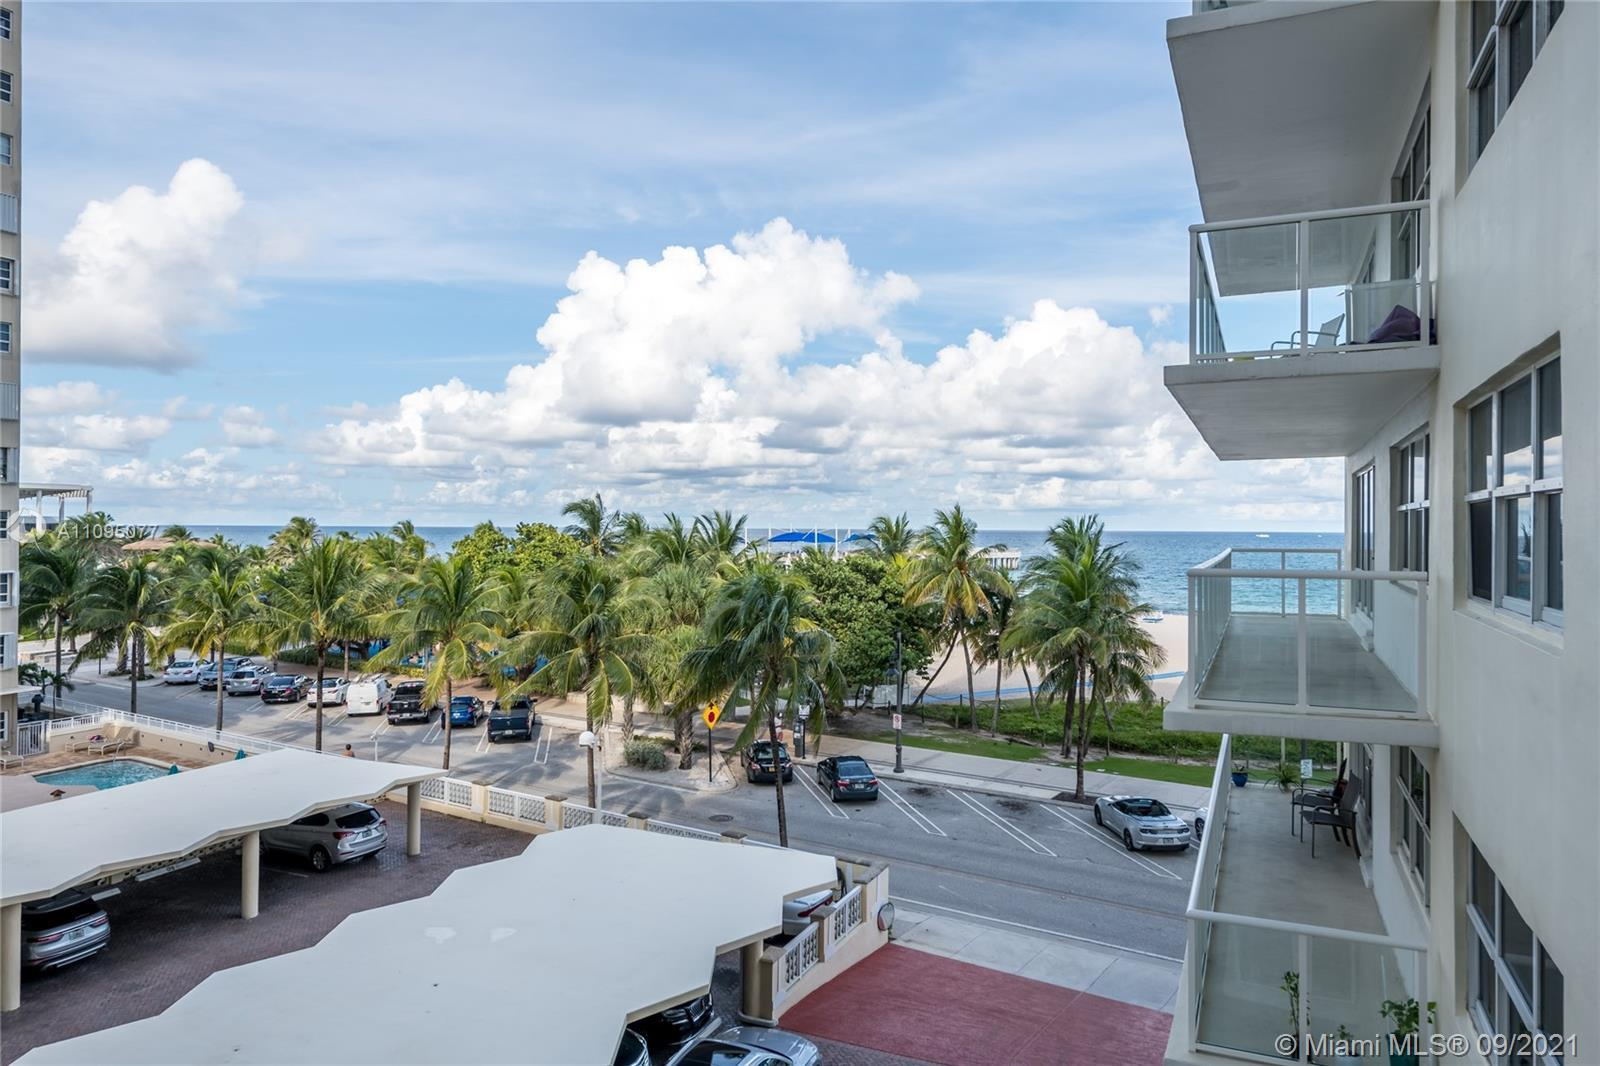 Amazing views from this unit .Best building pompano Beach Sea Monarch Remodeled unit, internet serv